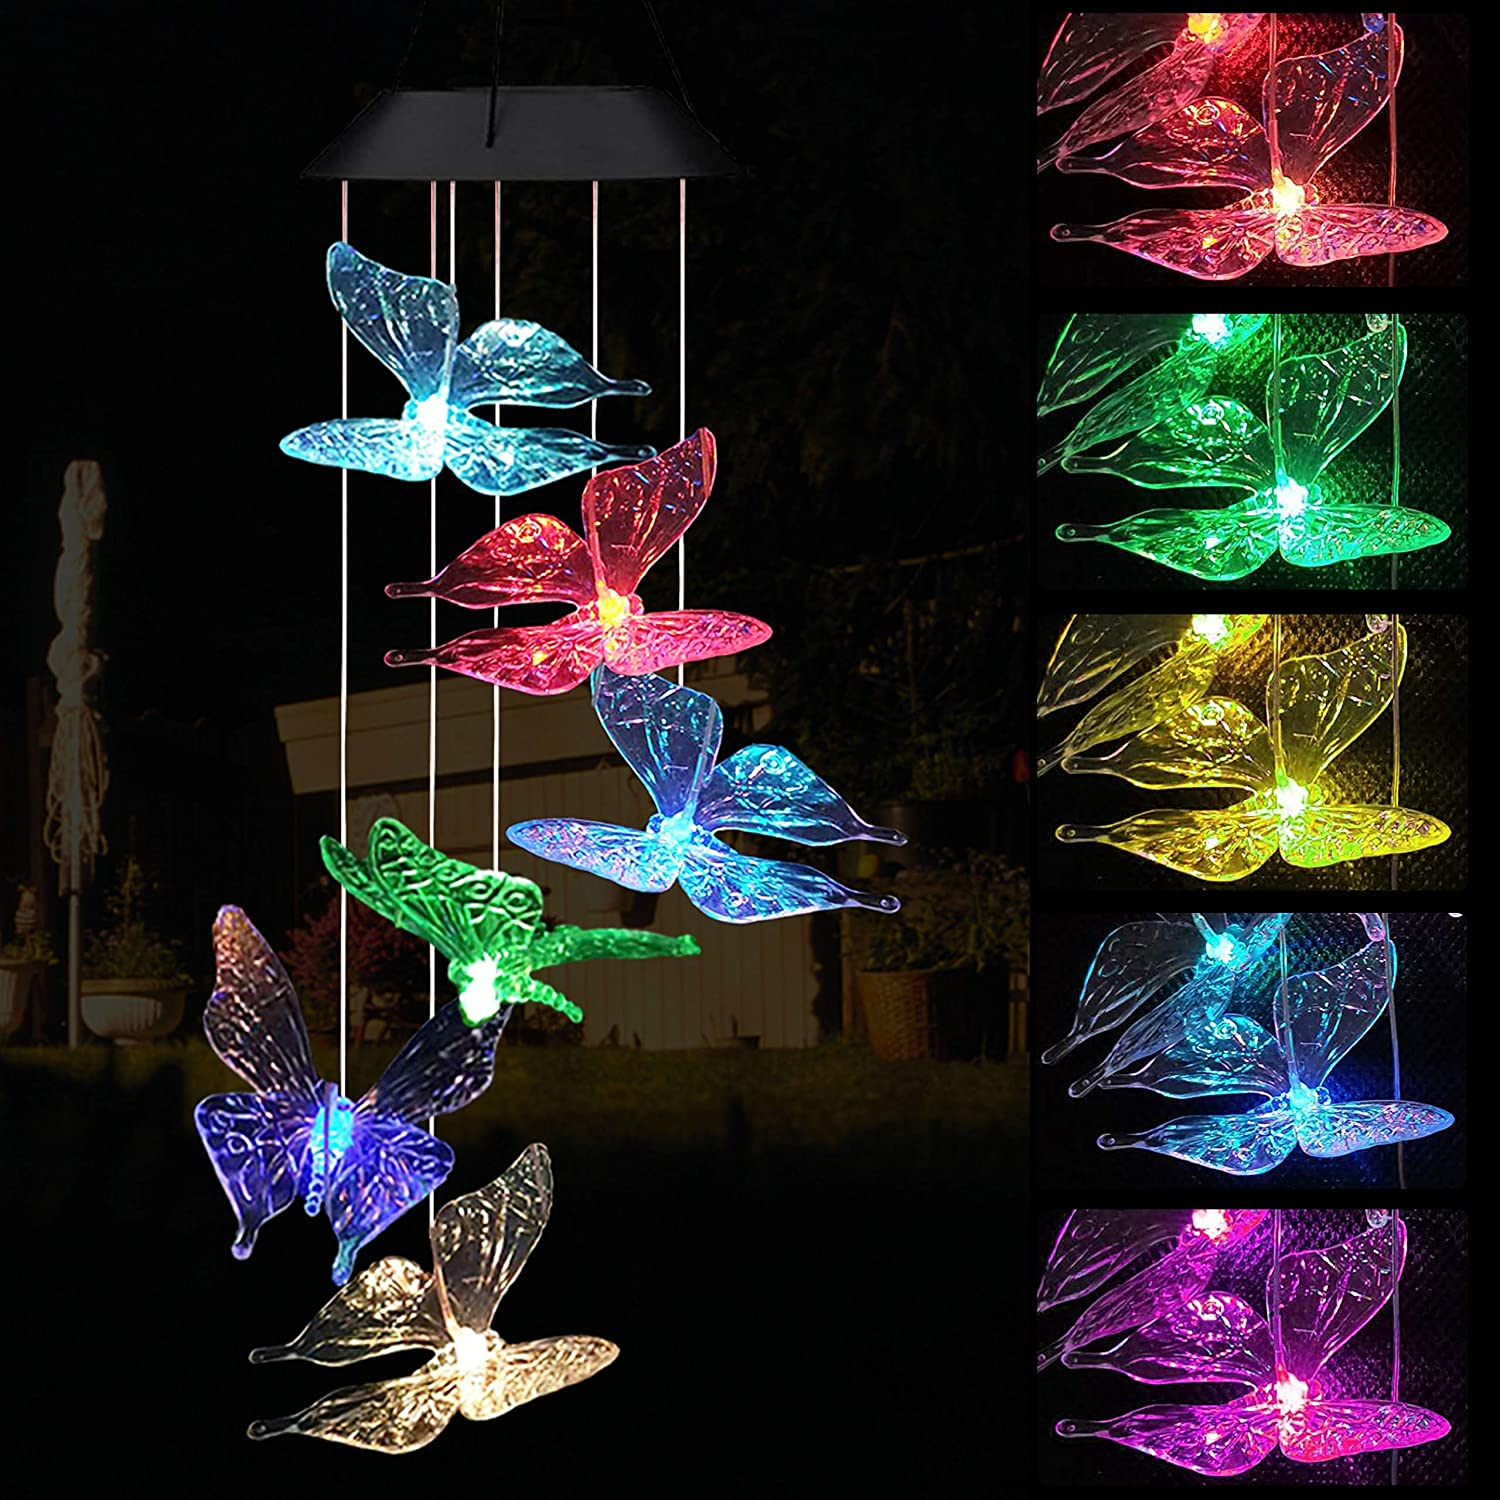 Camidy Solar LED Wind Chime,Spinner Butterfly Shaped Windchime Haning Color Changing Waterproof Decorative Windbell Light for Home Balcony Garden